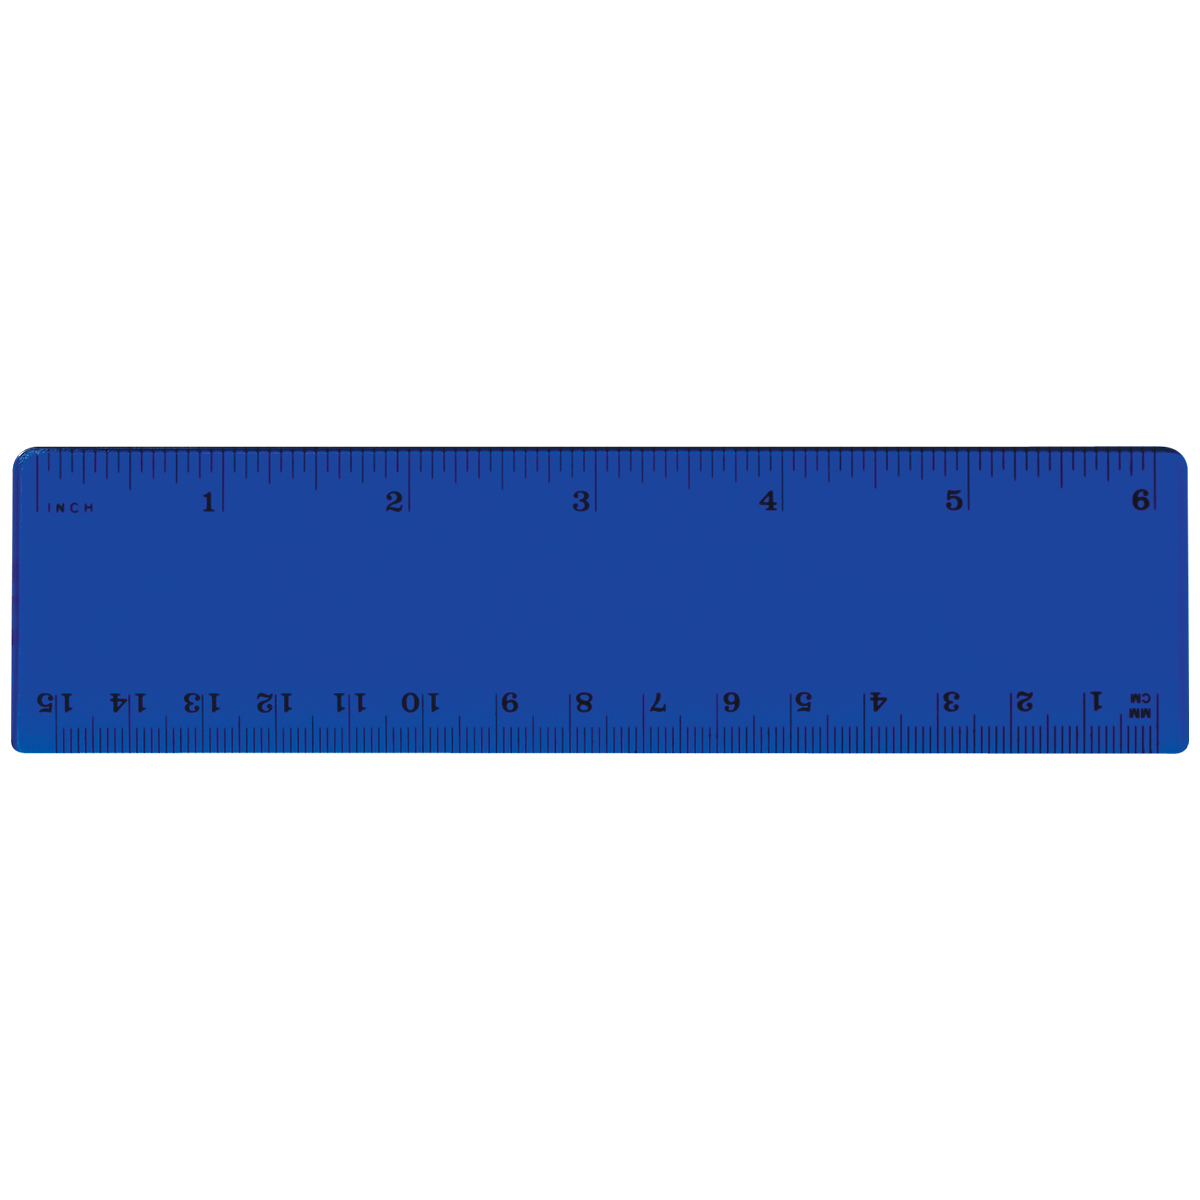 12 Inch Ruler Printable Promotionalplastic6ruler16361 Jpg